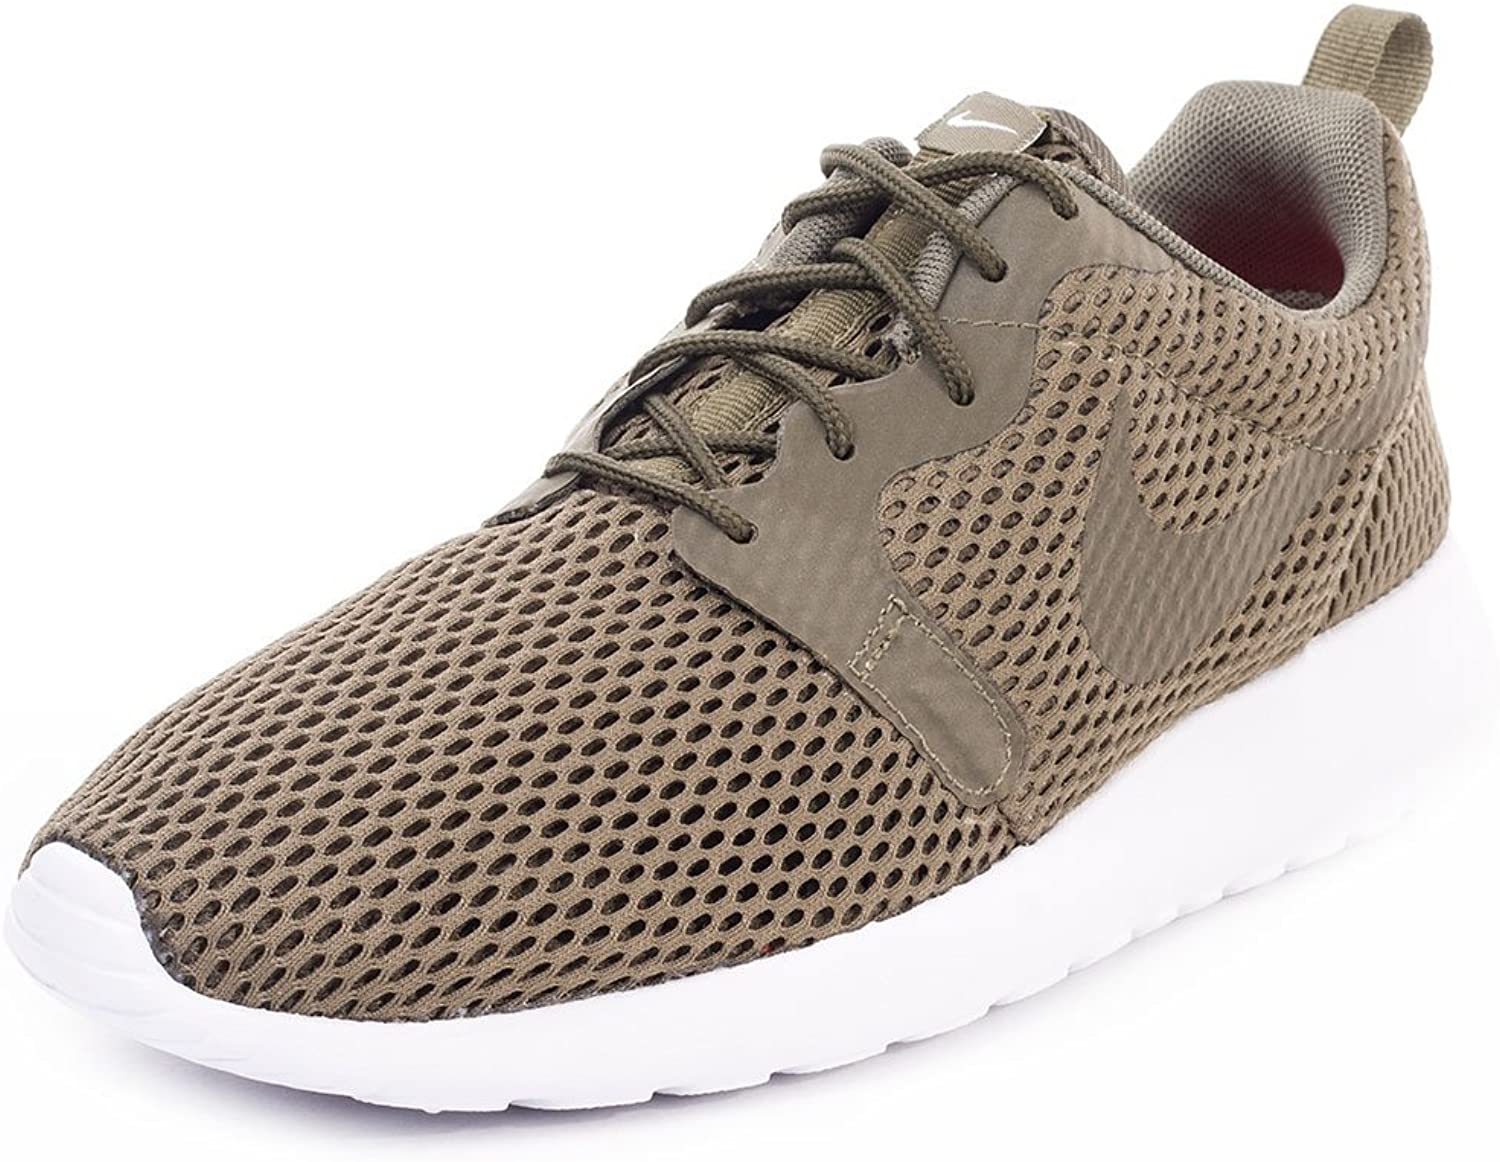 Nike Roshe One Hyp Br, Men's Sneakers